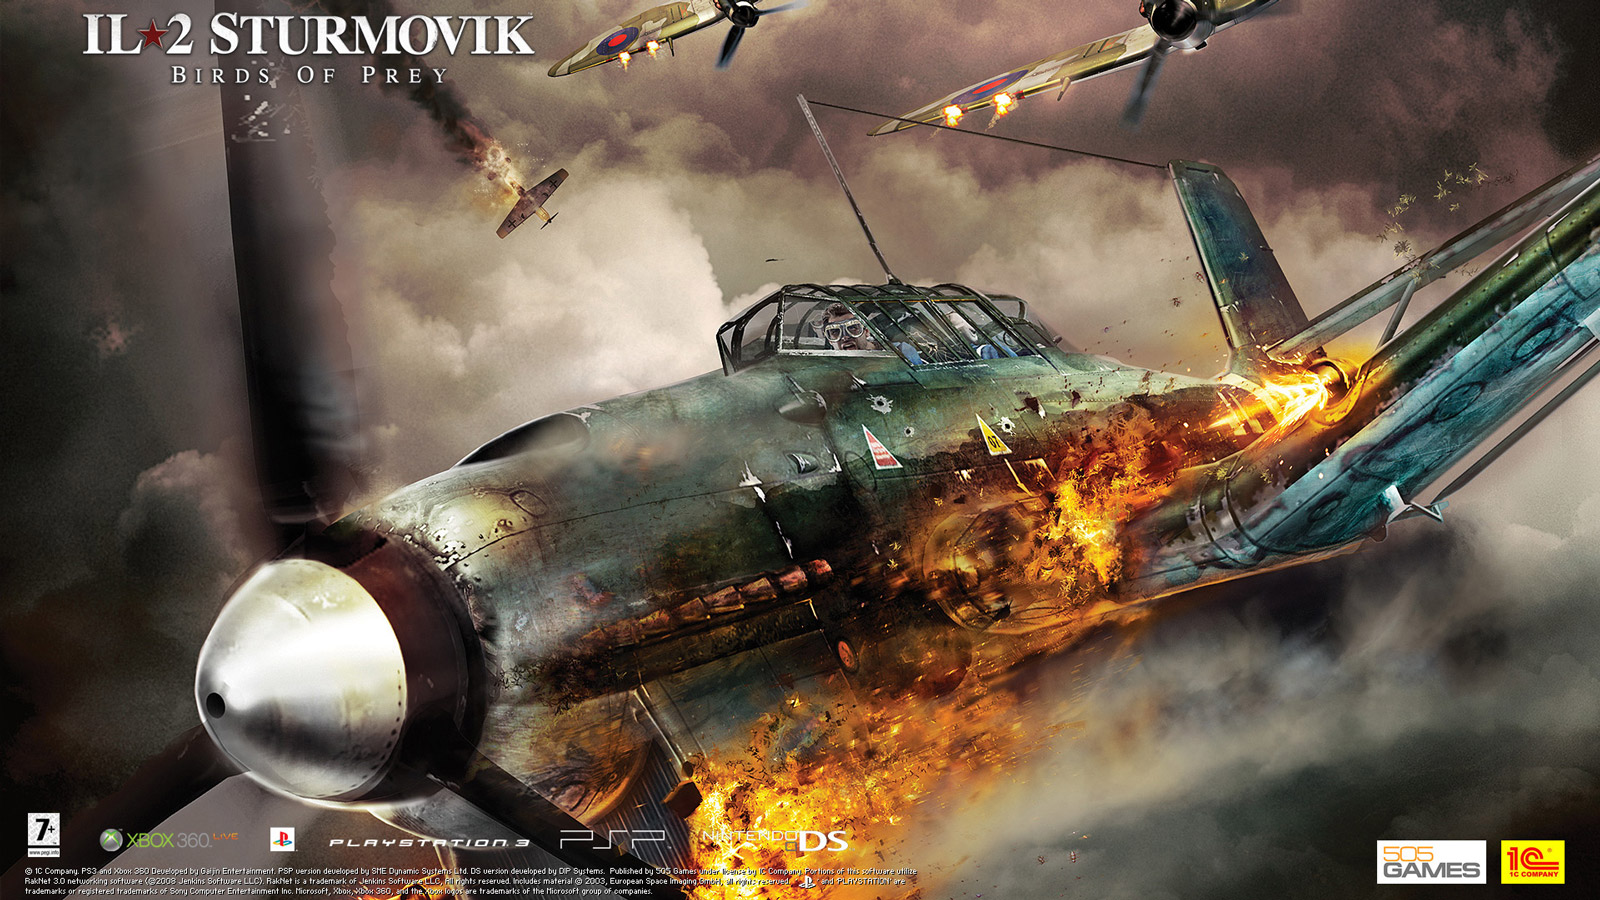 Free IL-2 Sturmovik: Birds of Prey Wallpaper in 1600x900